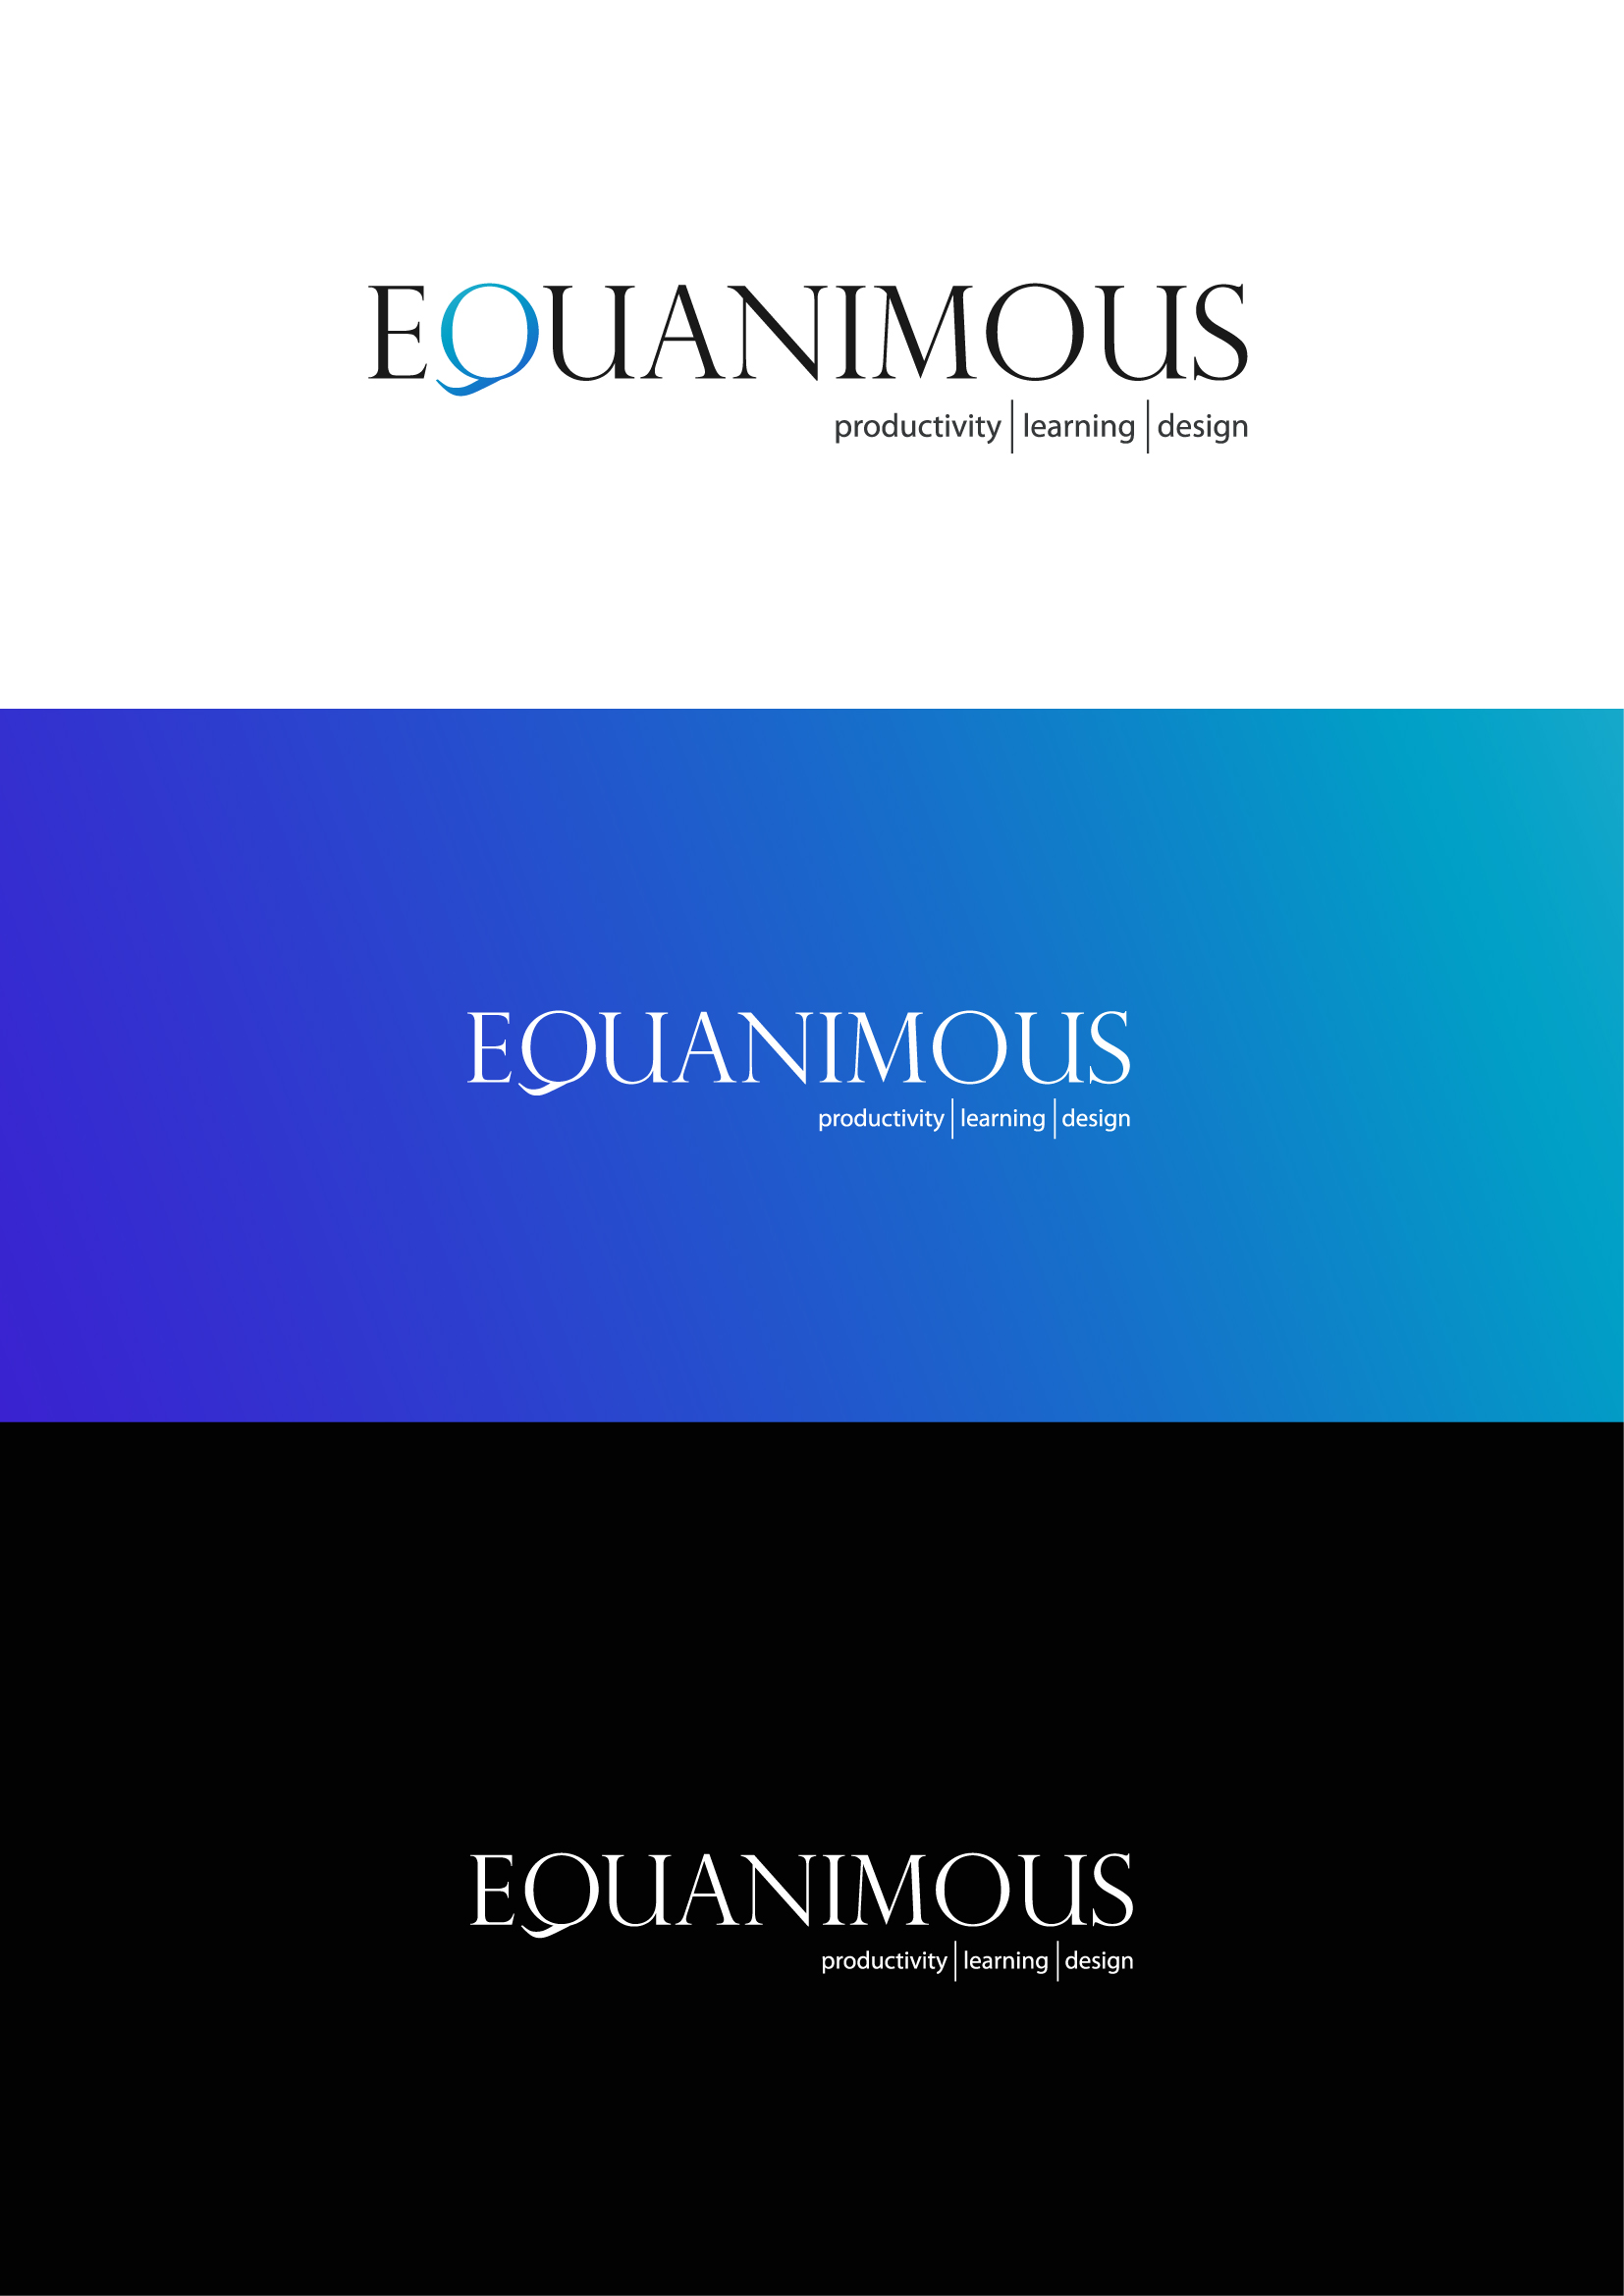 Logo Design by Osi Indra - Entry No. 506 in the Logo Design Contest Logo Design : EQUANIMOUS : Productivity | Learning | Design.